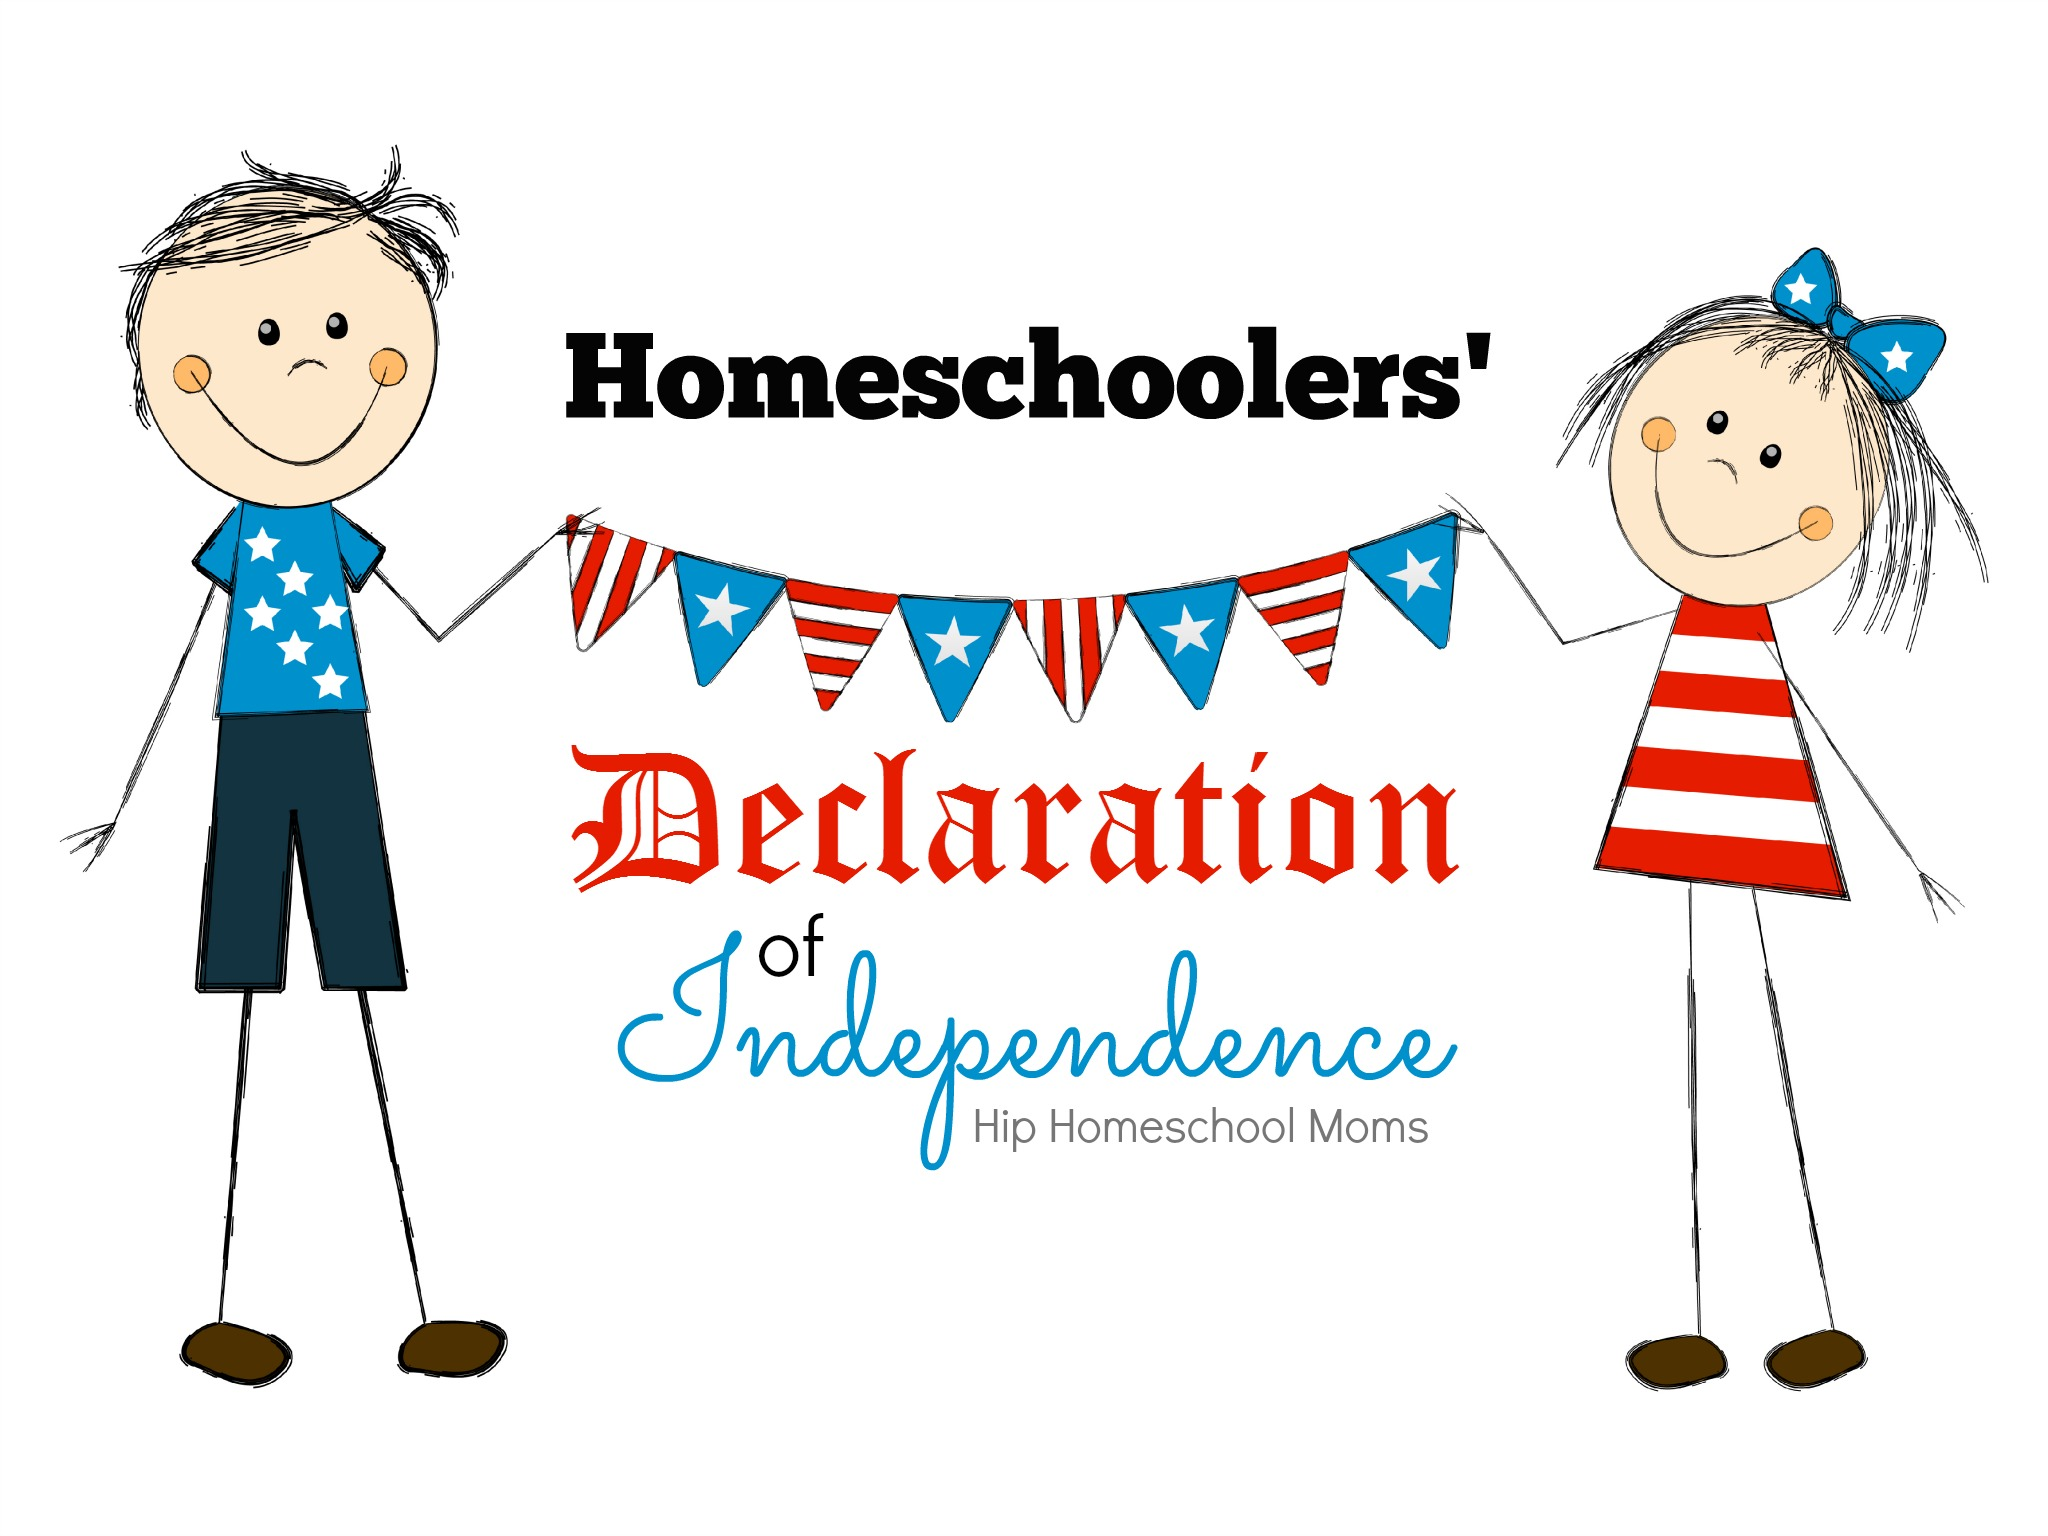 Homeschoolers' Declaration of Independence